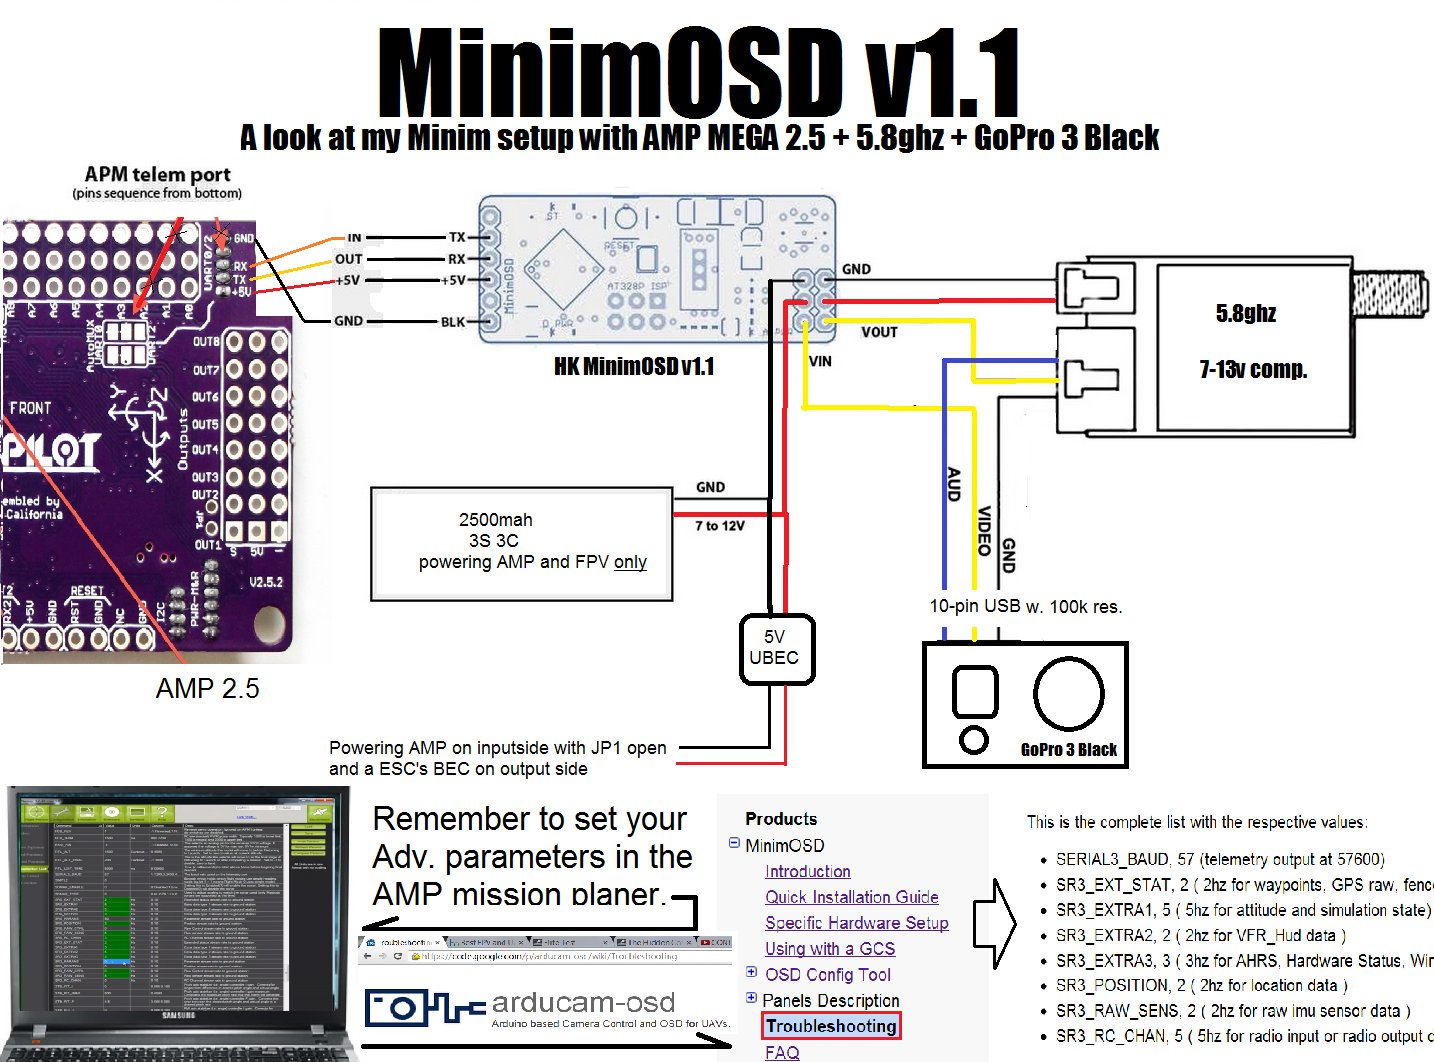 apm 2 5 minimosd v1 1 how to setup w gopro 3 b flite test rh flitetest com amp wiring diagram crutchfield amp wiring diagram saab 9000